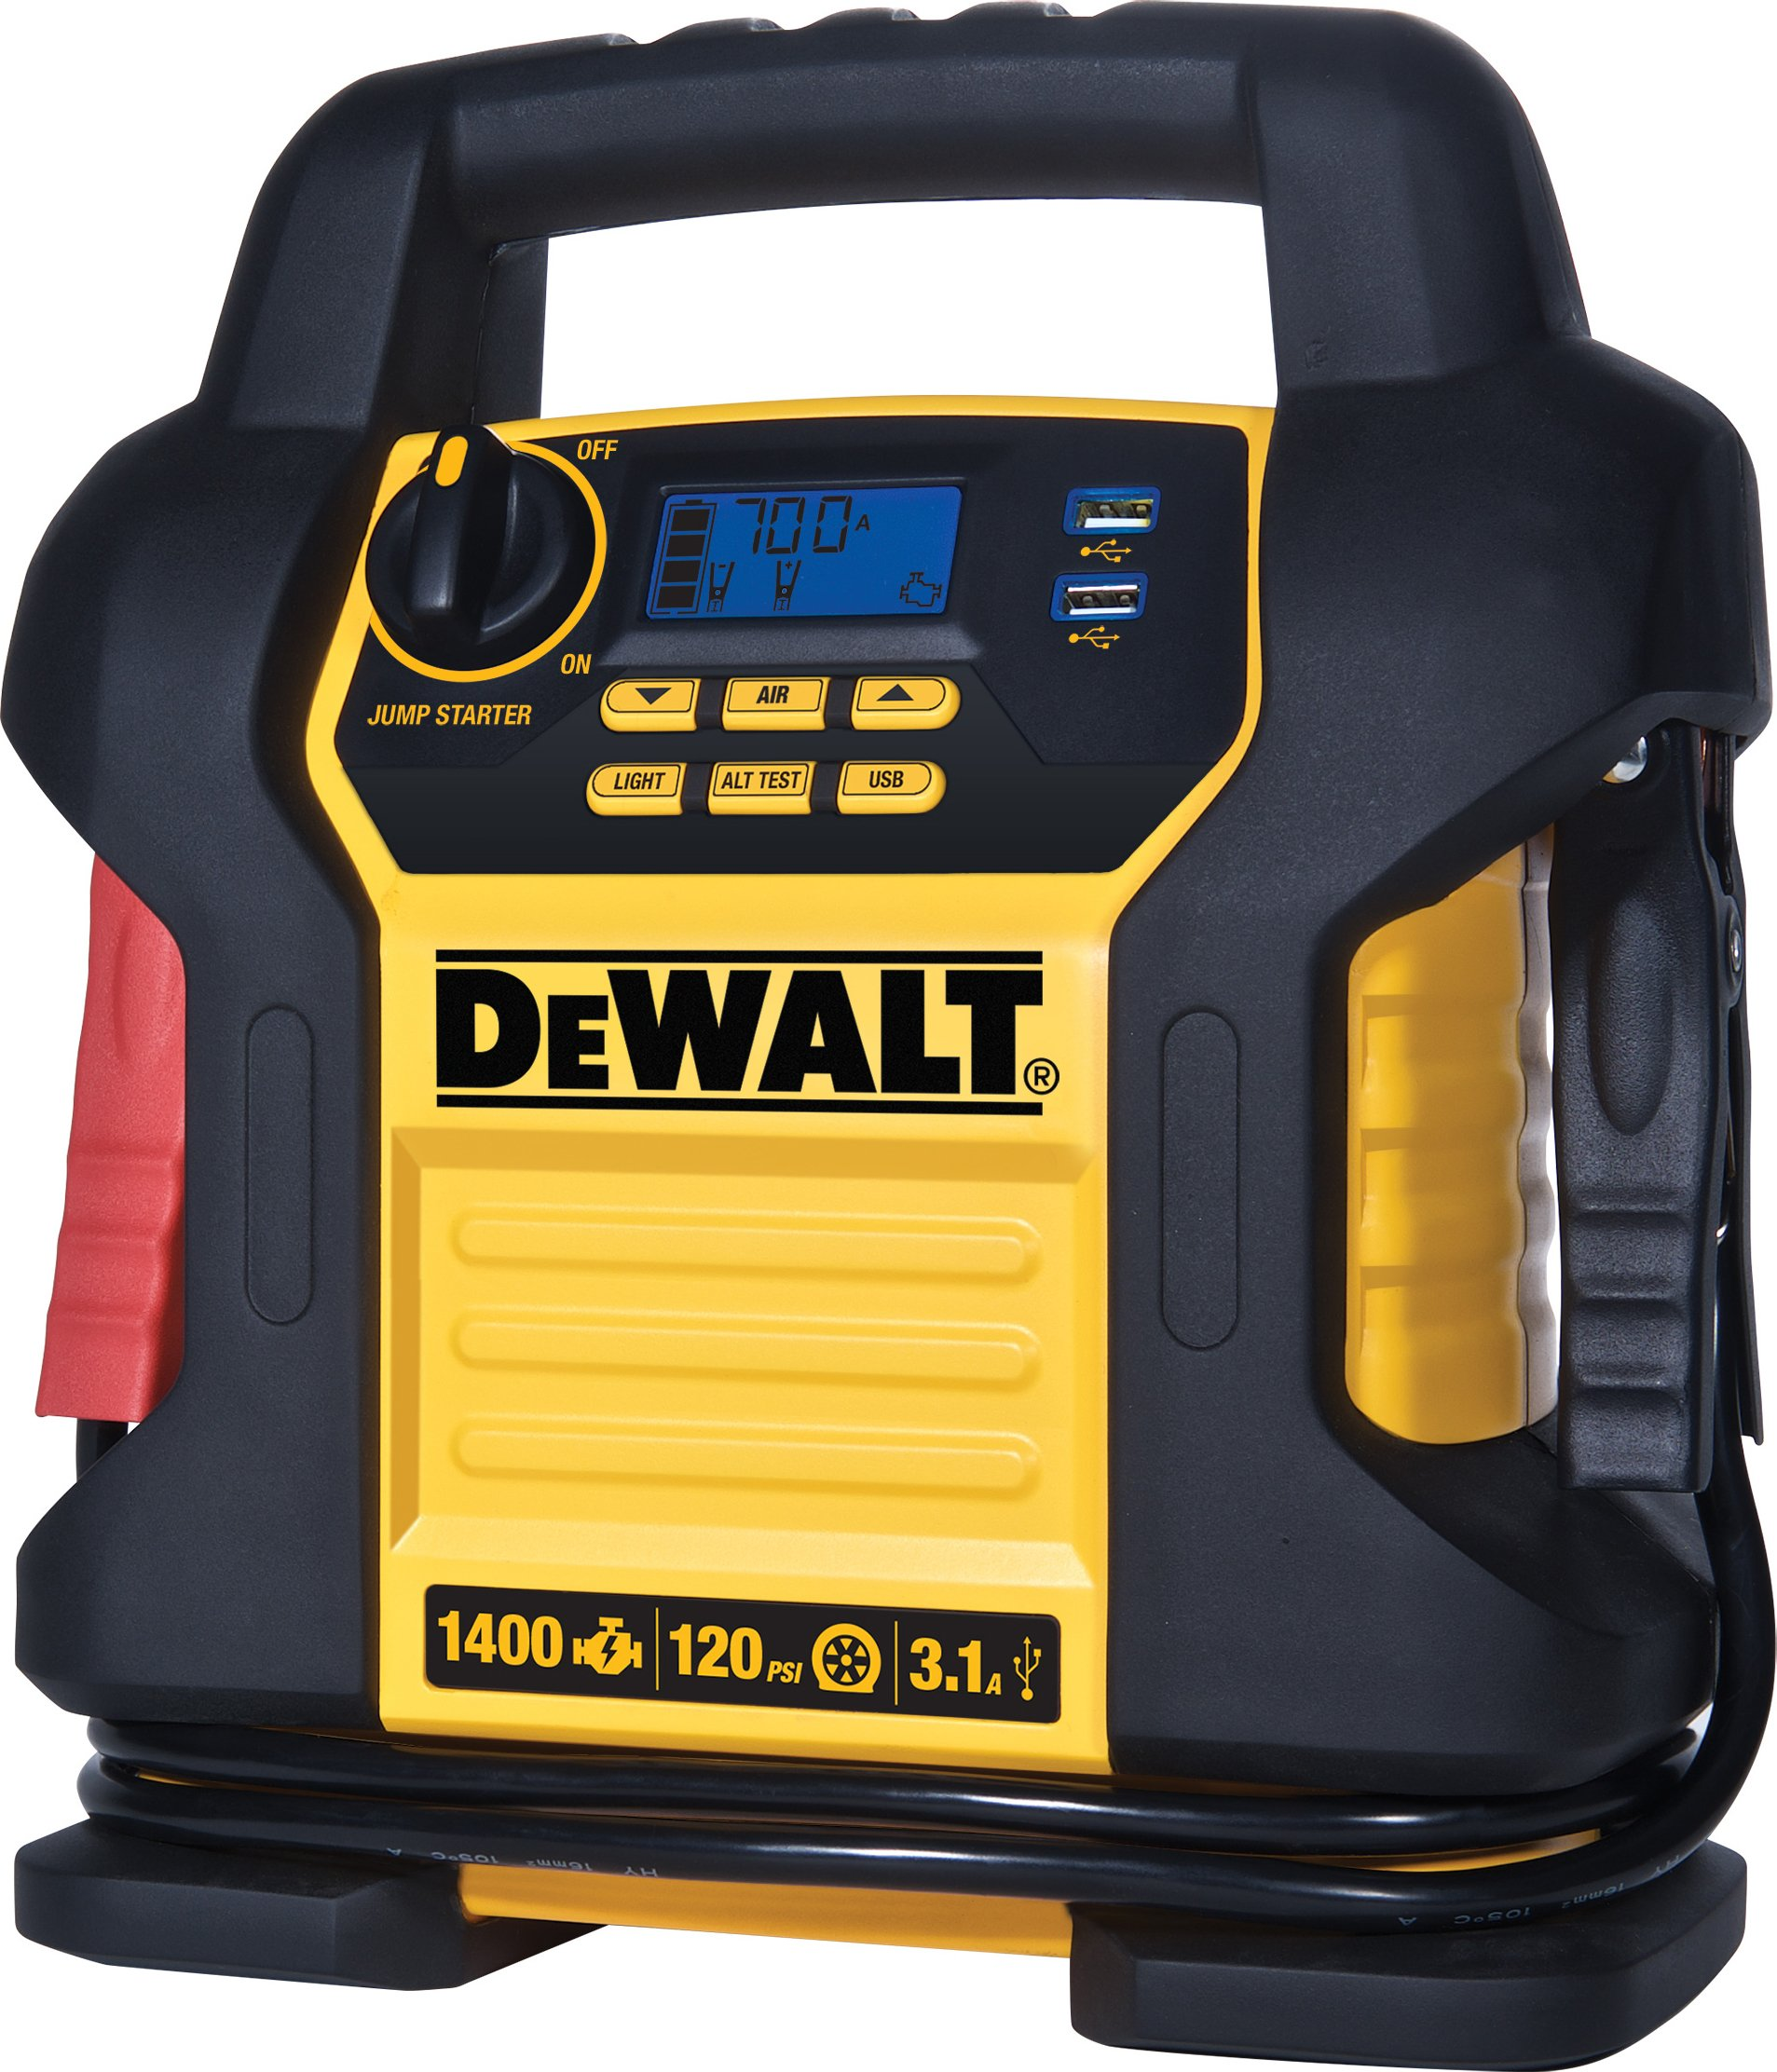 DEWALT DXAEJ14 Power Station Jump Starter: 1400 Peak/700